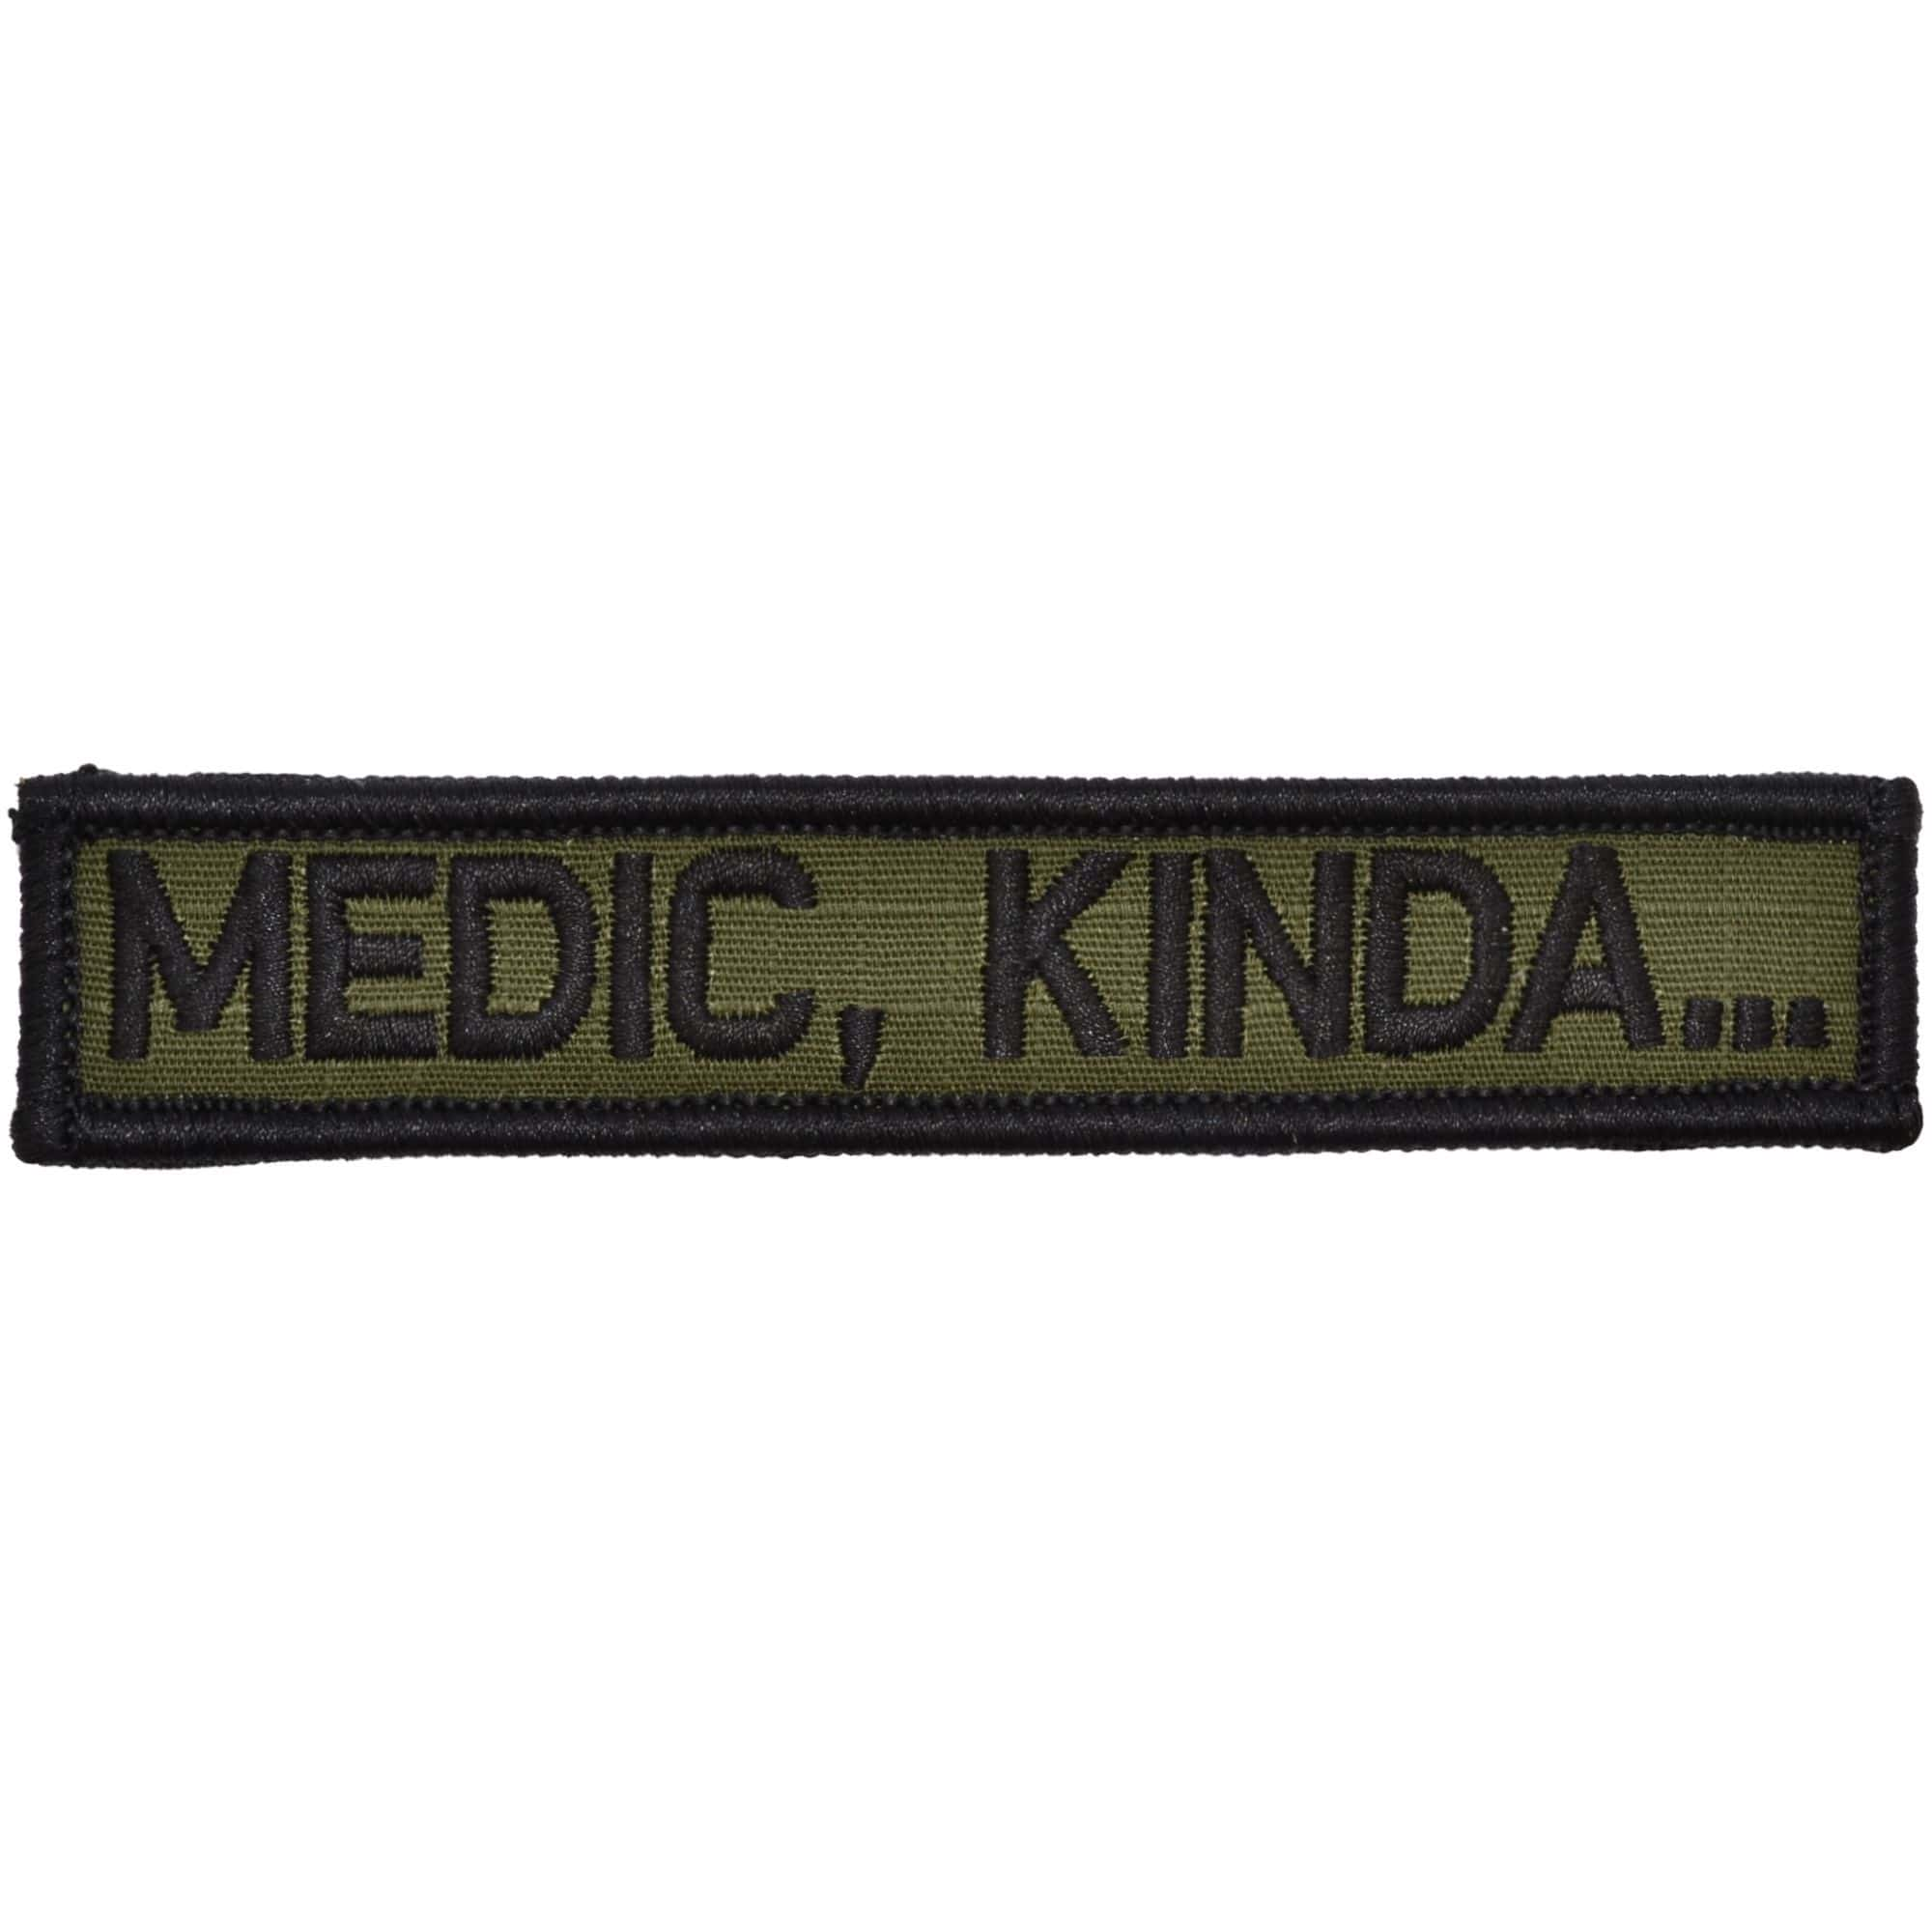 Tactical Gear Junkie Patches Olive Drab Medic, Kinda... - 1x5 Patch